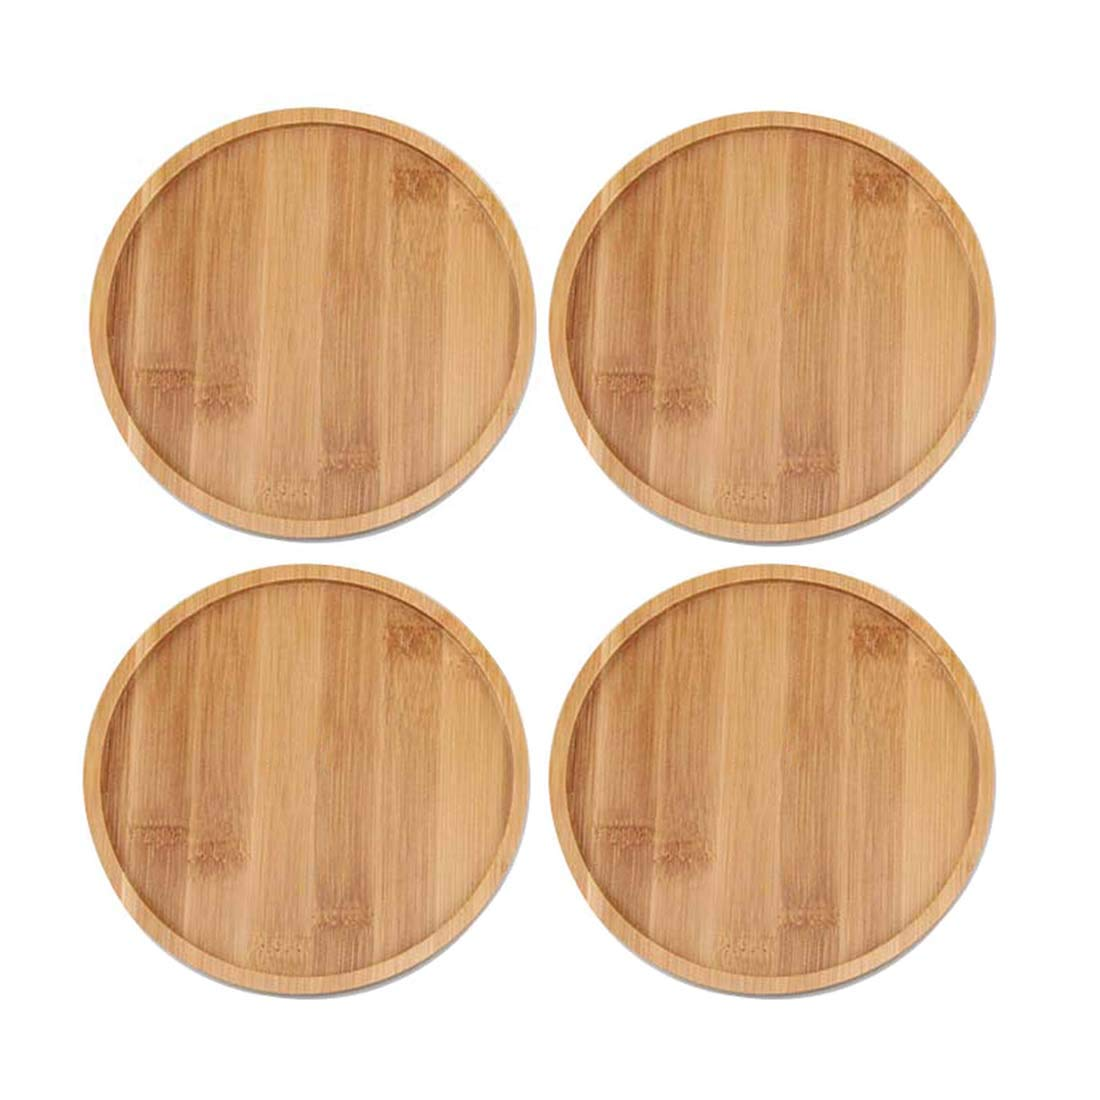 TOUCH MISS 6.1 Inch Round Bamboo Plants Saucer for Pot Sandy Beige Pack of 4 Brand:TOUCH MISS by TOUCH MISS